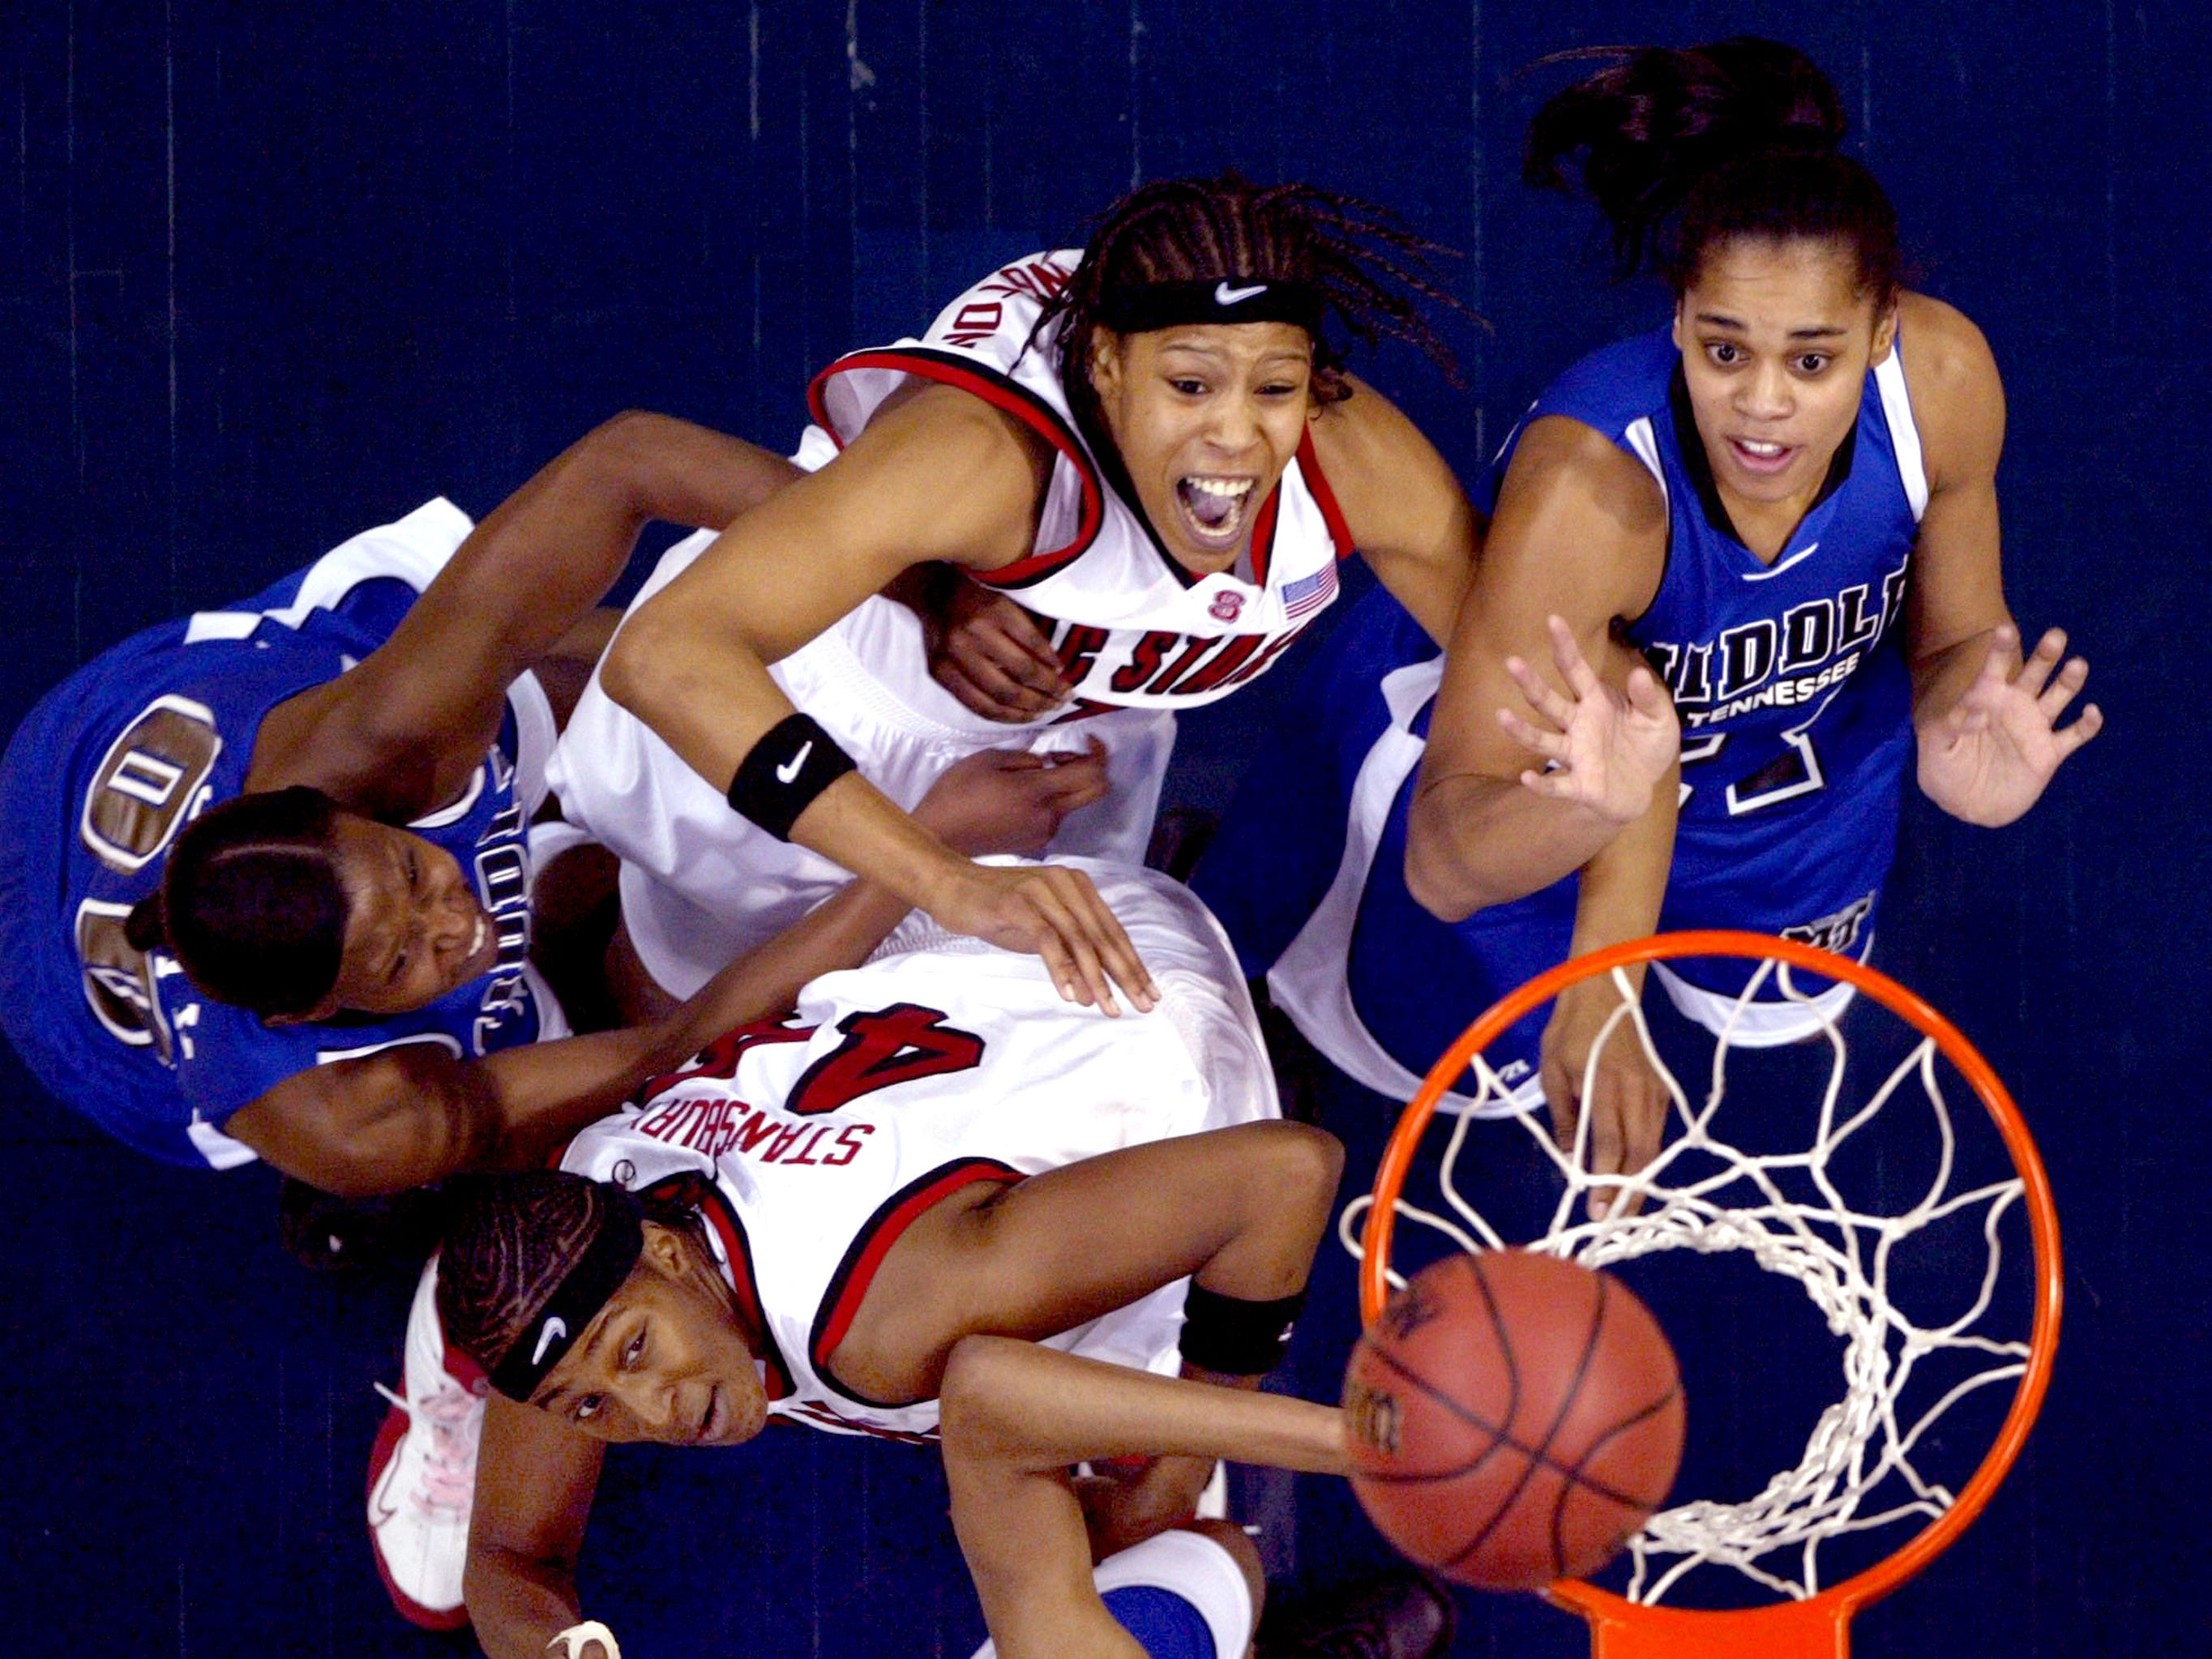 North Carolina State center Tiffany Stansbury (44) and teammate Khadijah Whittington (1) wait for the rebound with Middle Tennessee players Clara Gray (00) and Tia Stovall (21) during the first half of their NCAA tournament first-round game in Dallas, Saturday, March 19, 2005.